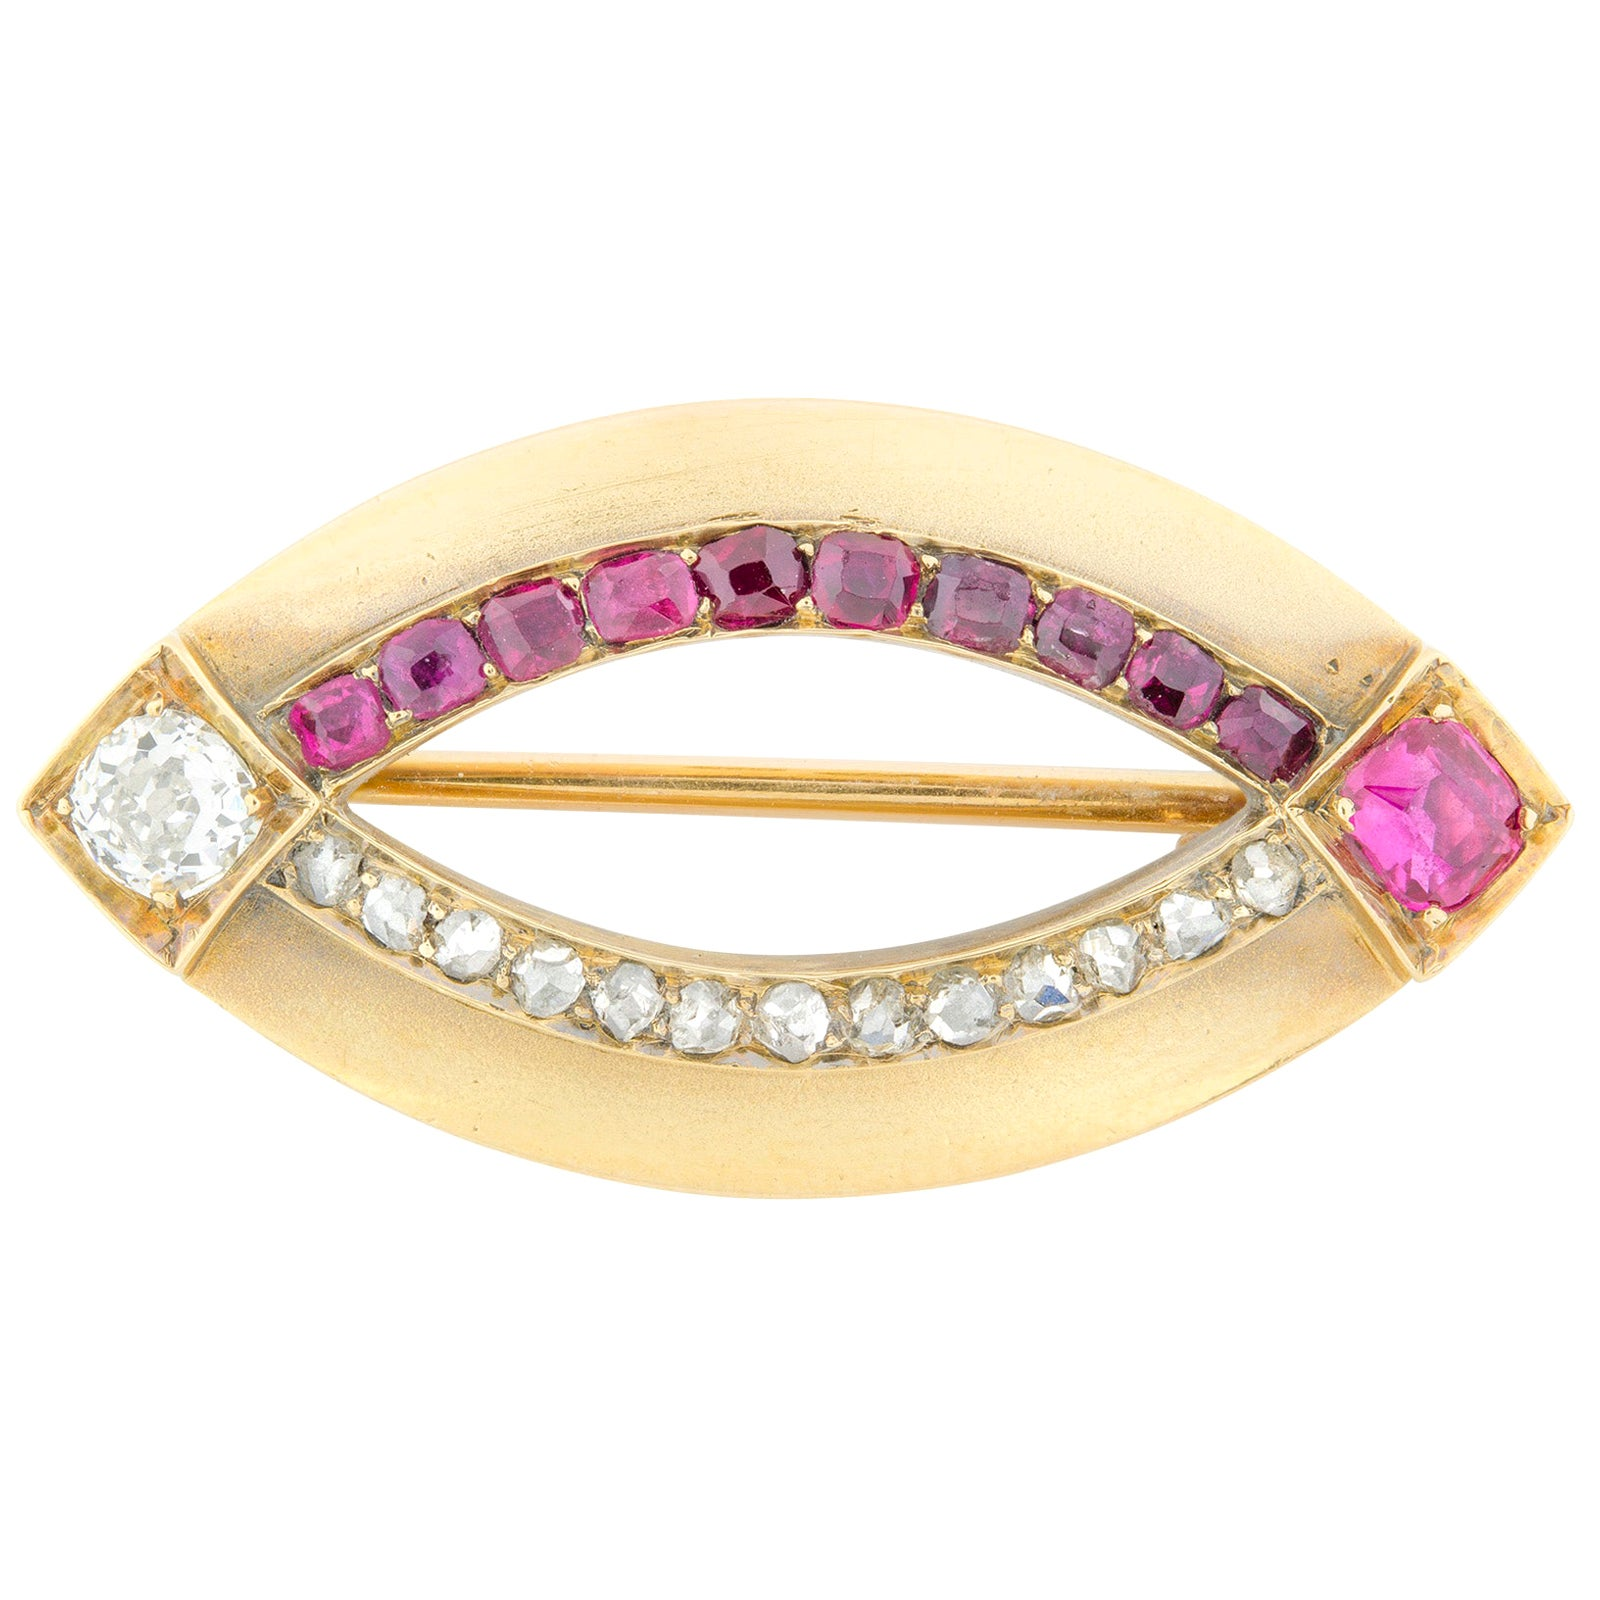 Fabergé Ruby and Diamond Set Brooch in Yellow Gold